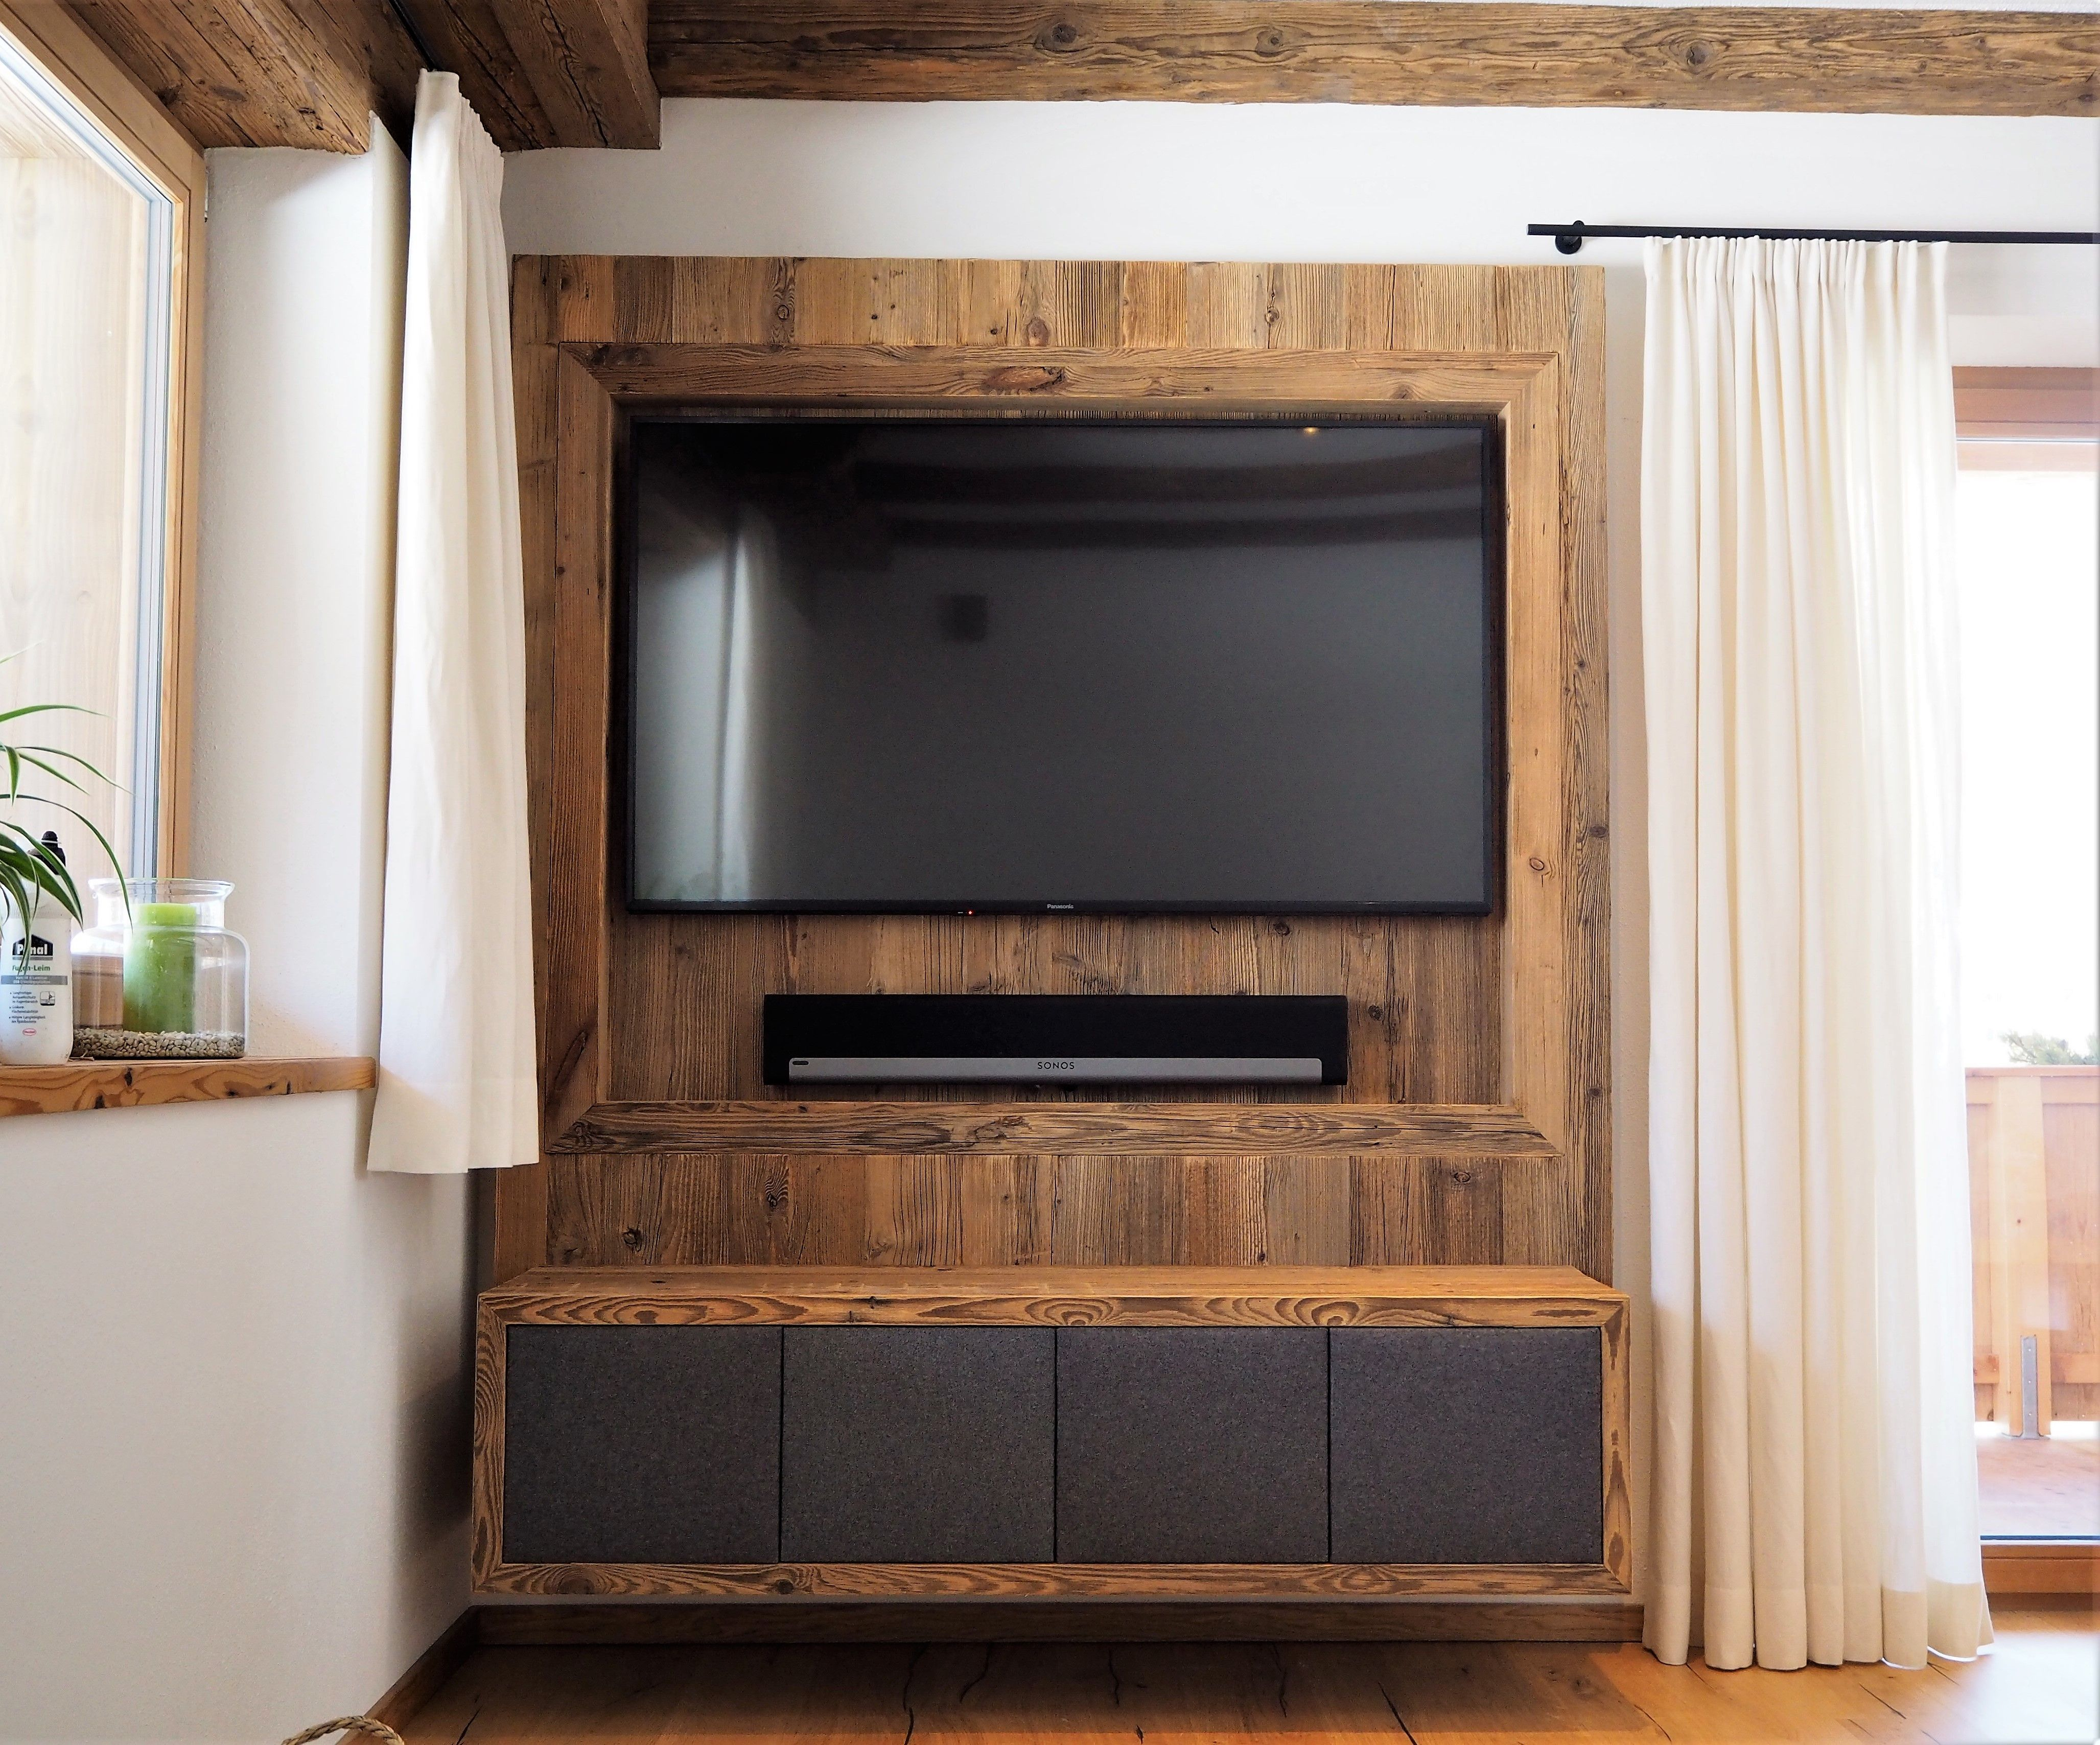 Wohnzimmer Ideen Altholz  Home, Home decor, House in nature